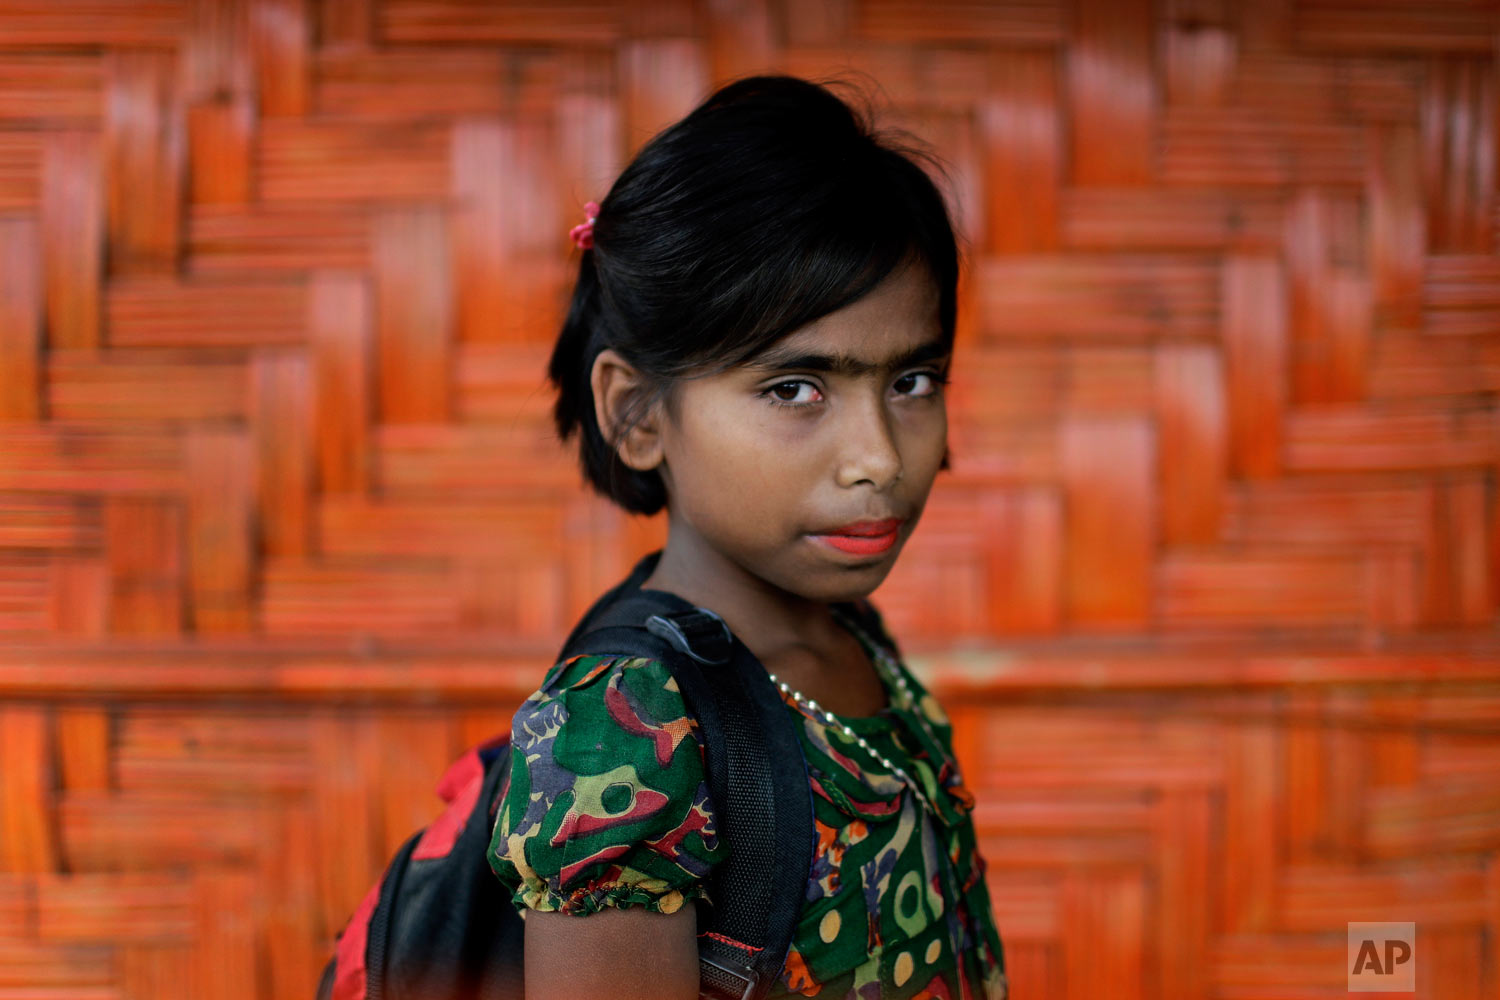 Taslima, 10, poses for a portrait in front of her classroom on June 27, 2018, in Chakmarkul refugee camp, Bangladesh. (AP Photo/Wong Maye-E)